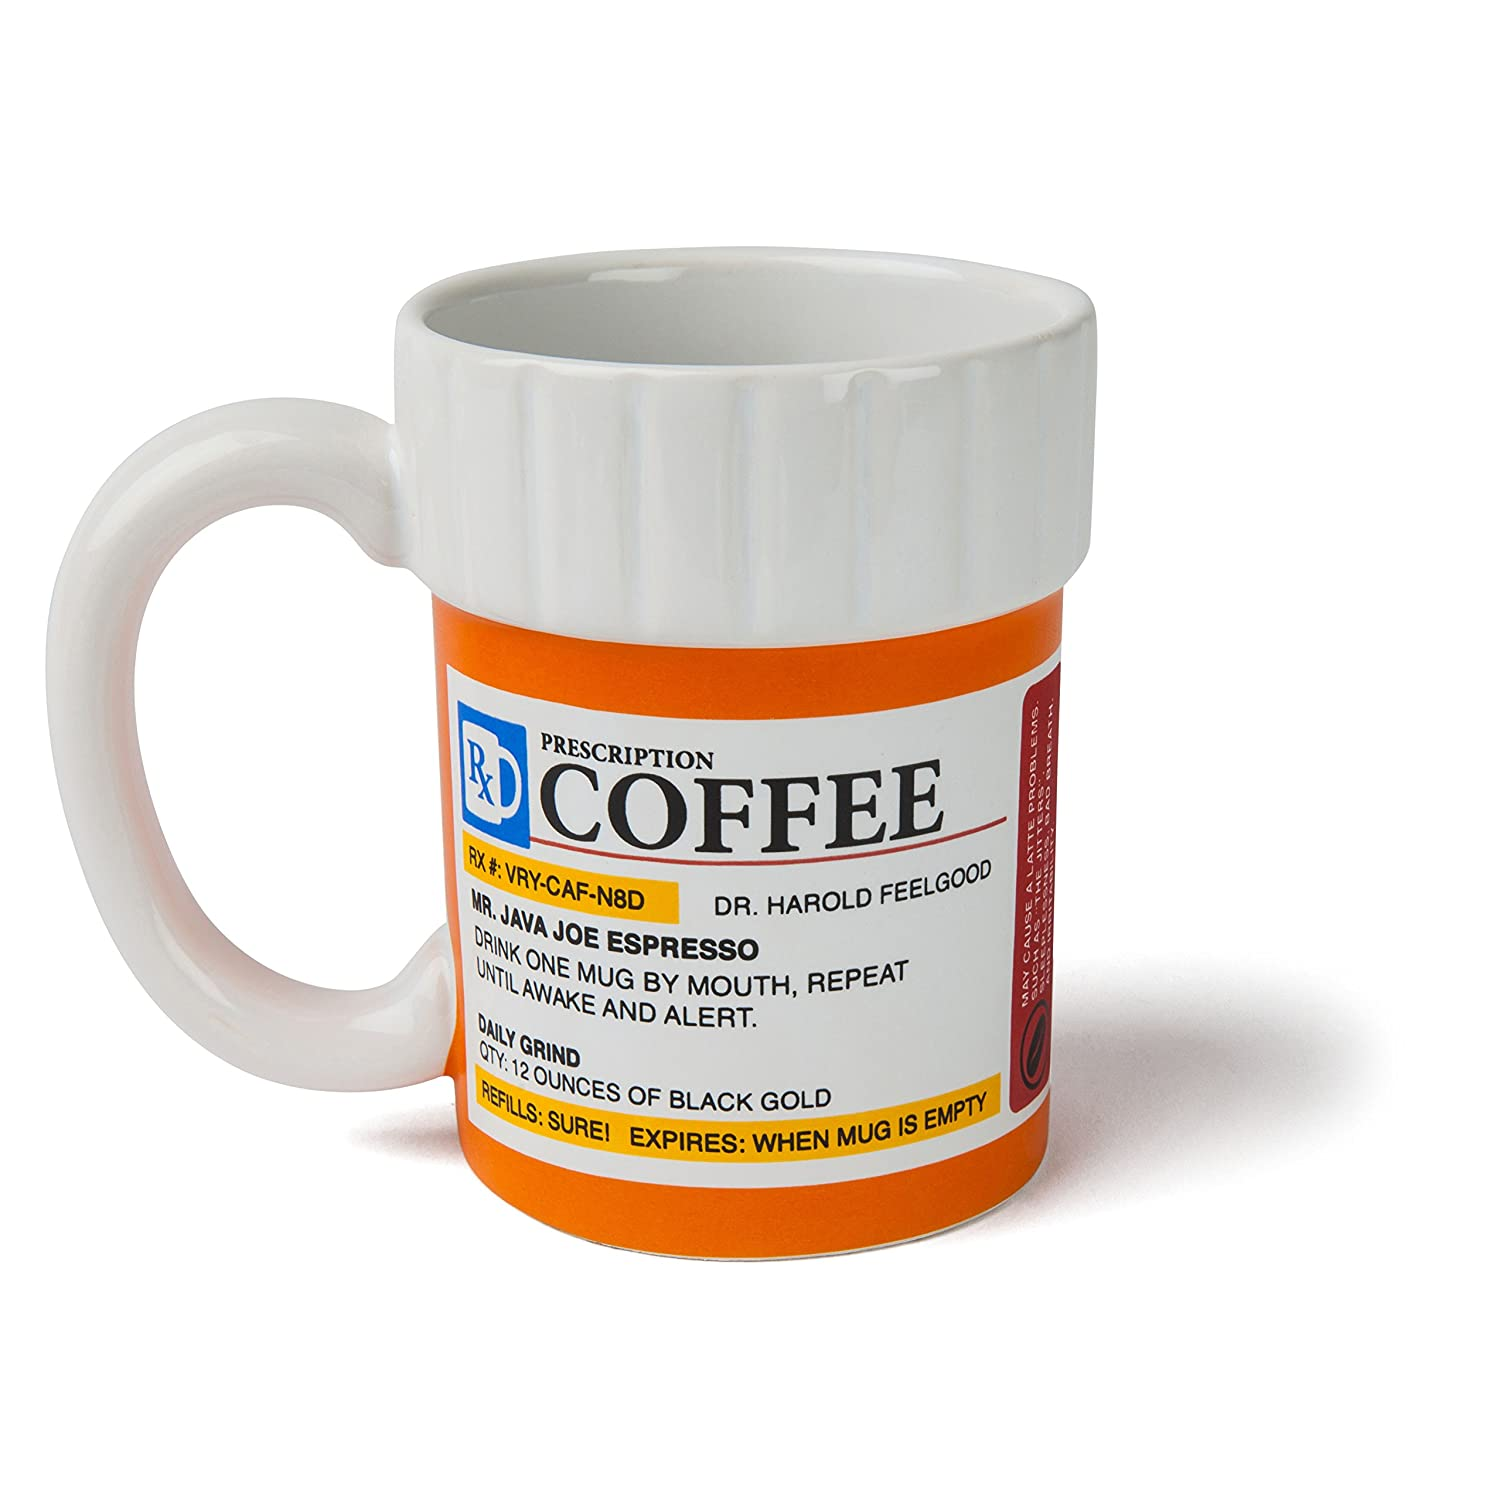 Coffee cup you can smoke out of - Bigmouth Inc The Original Prescription Mug